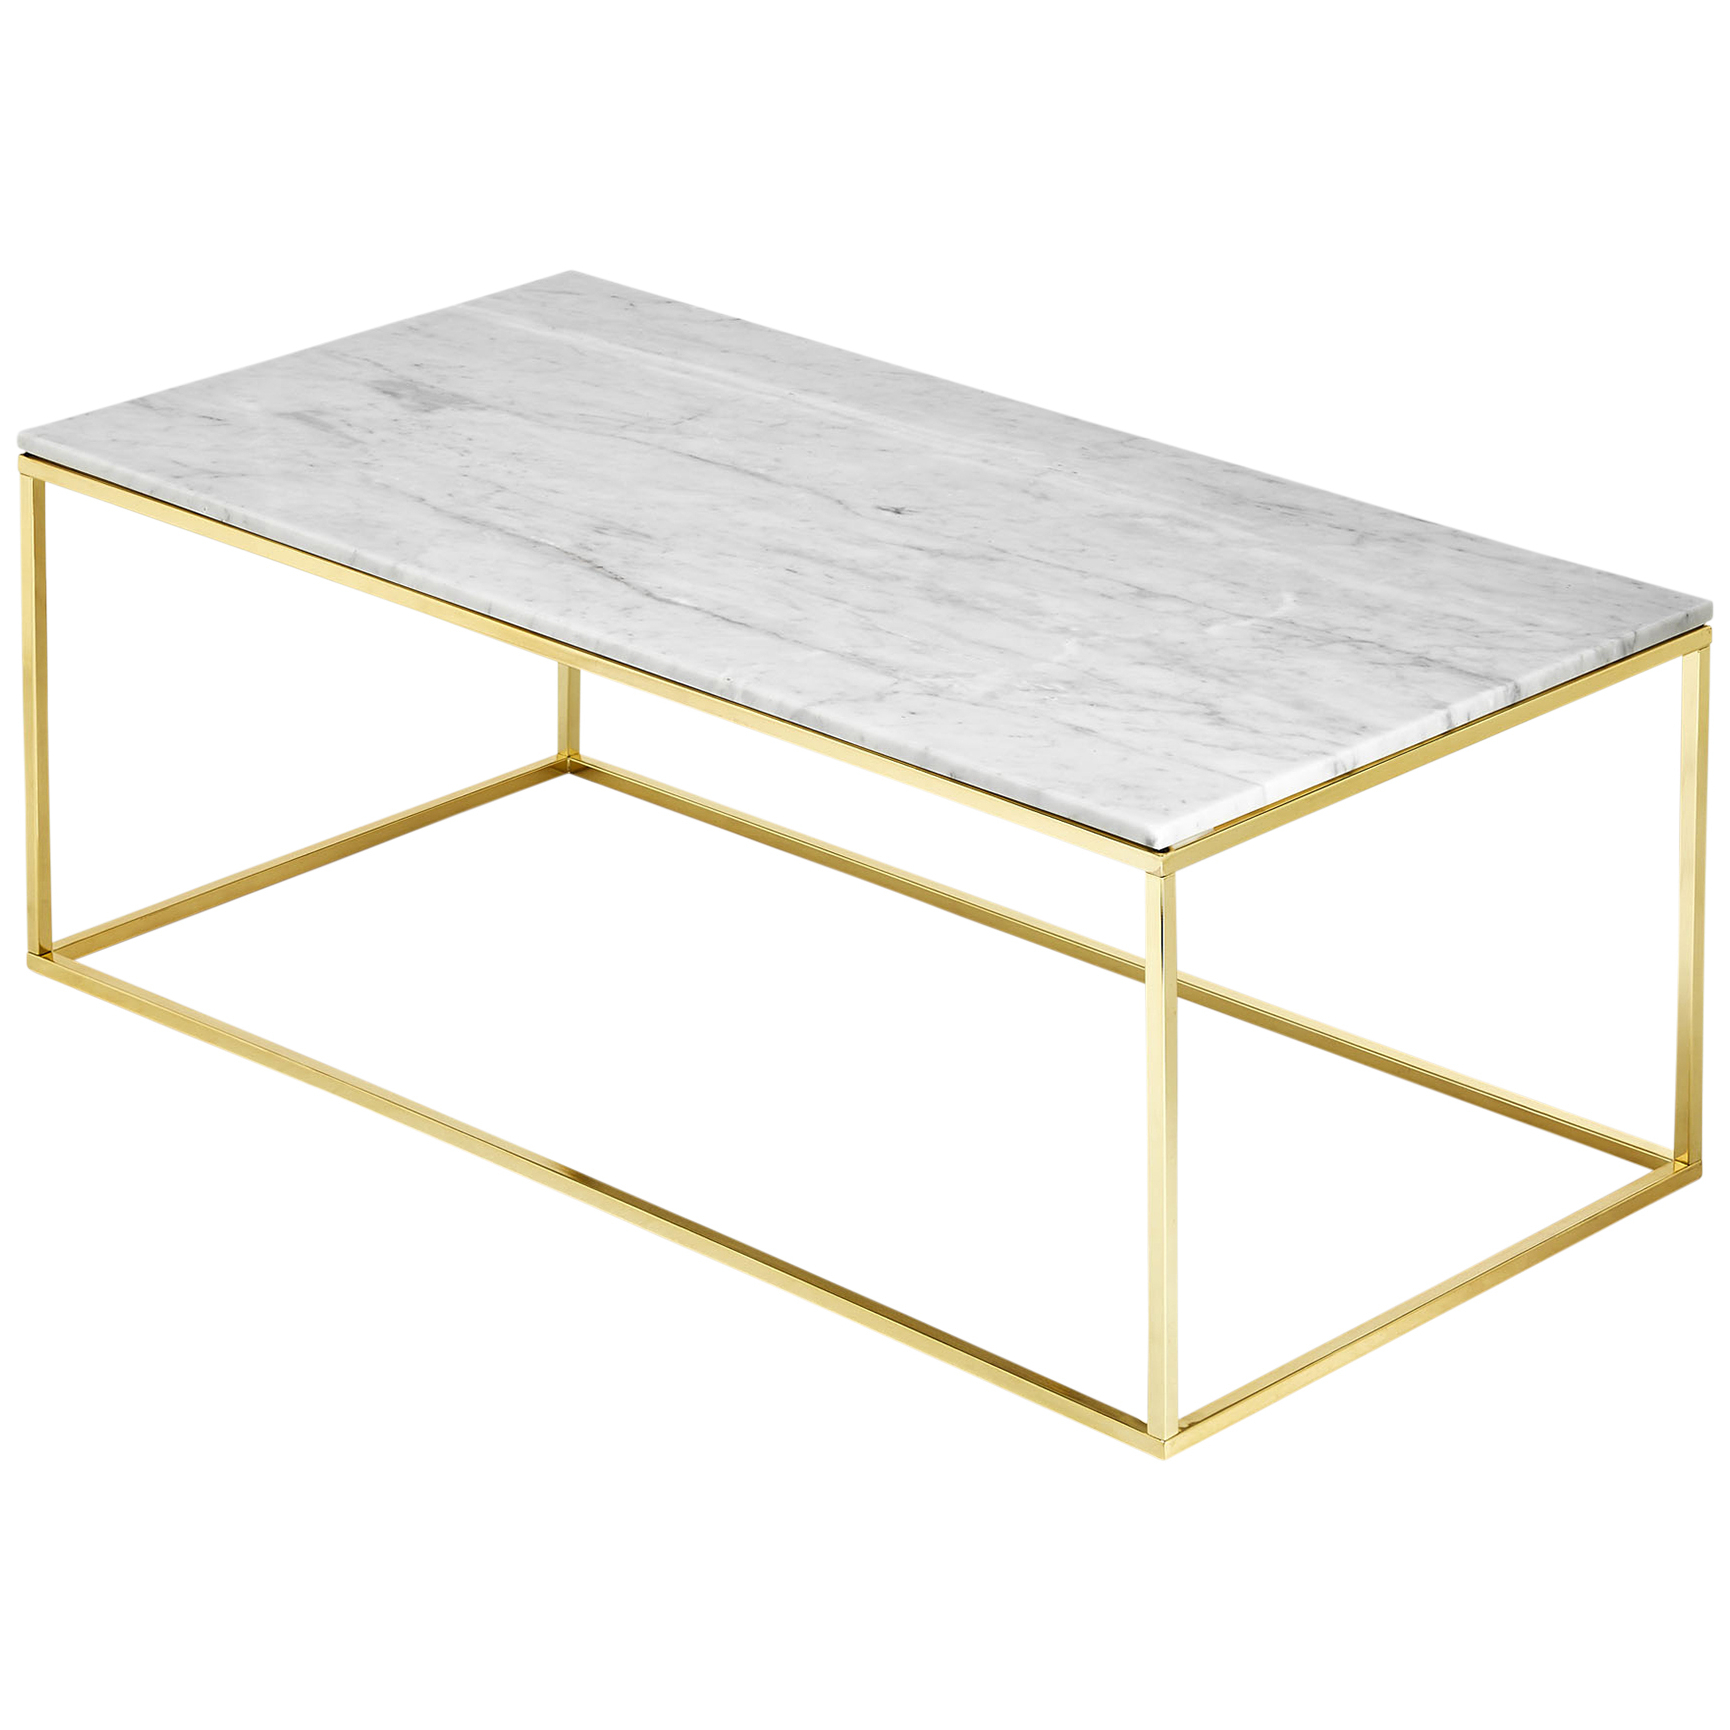 Best And Newest Marble Coffee Tables Inside Estudio Furniture Como White Marble Coffee Table & Reviews (View 2 of 20)